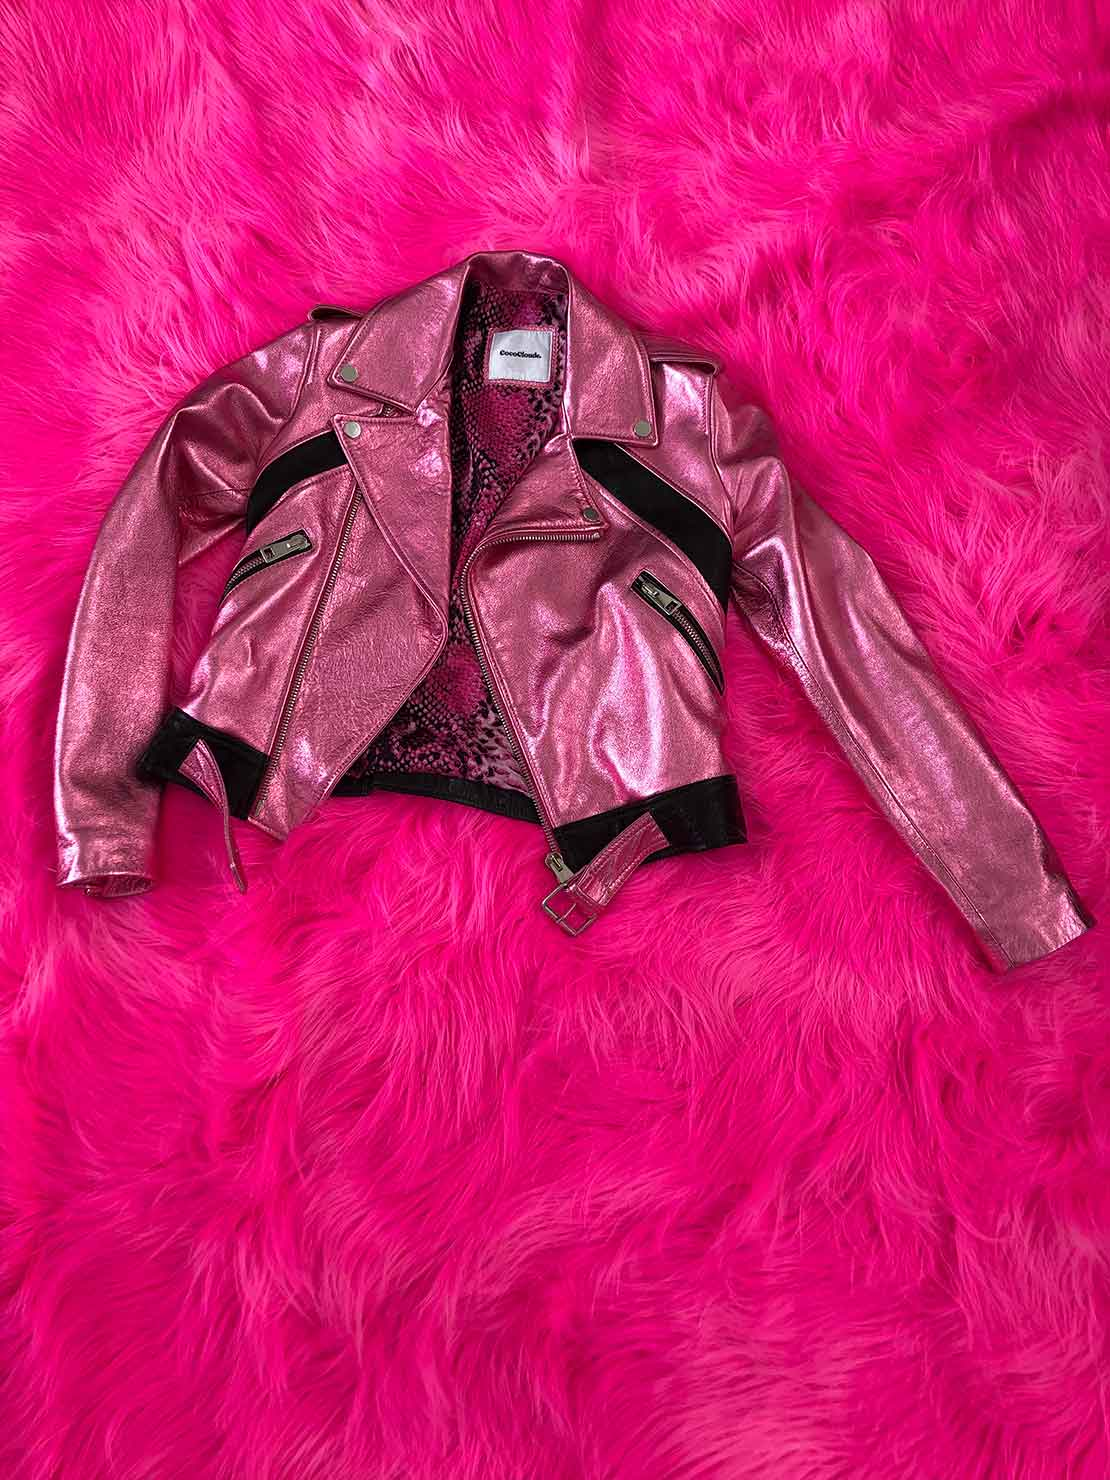 COCOCLOUDE - laminated leather jacket Pink